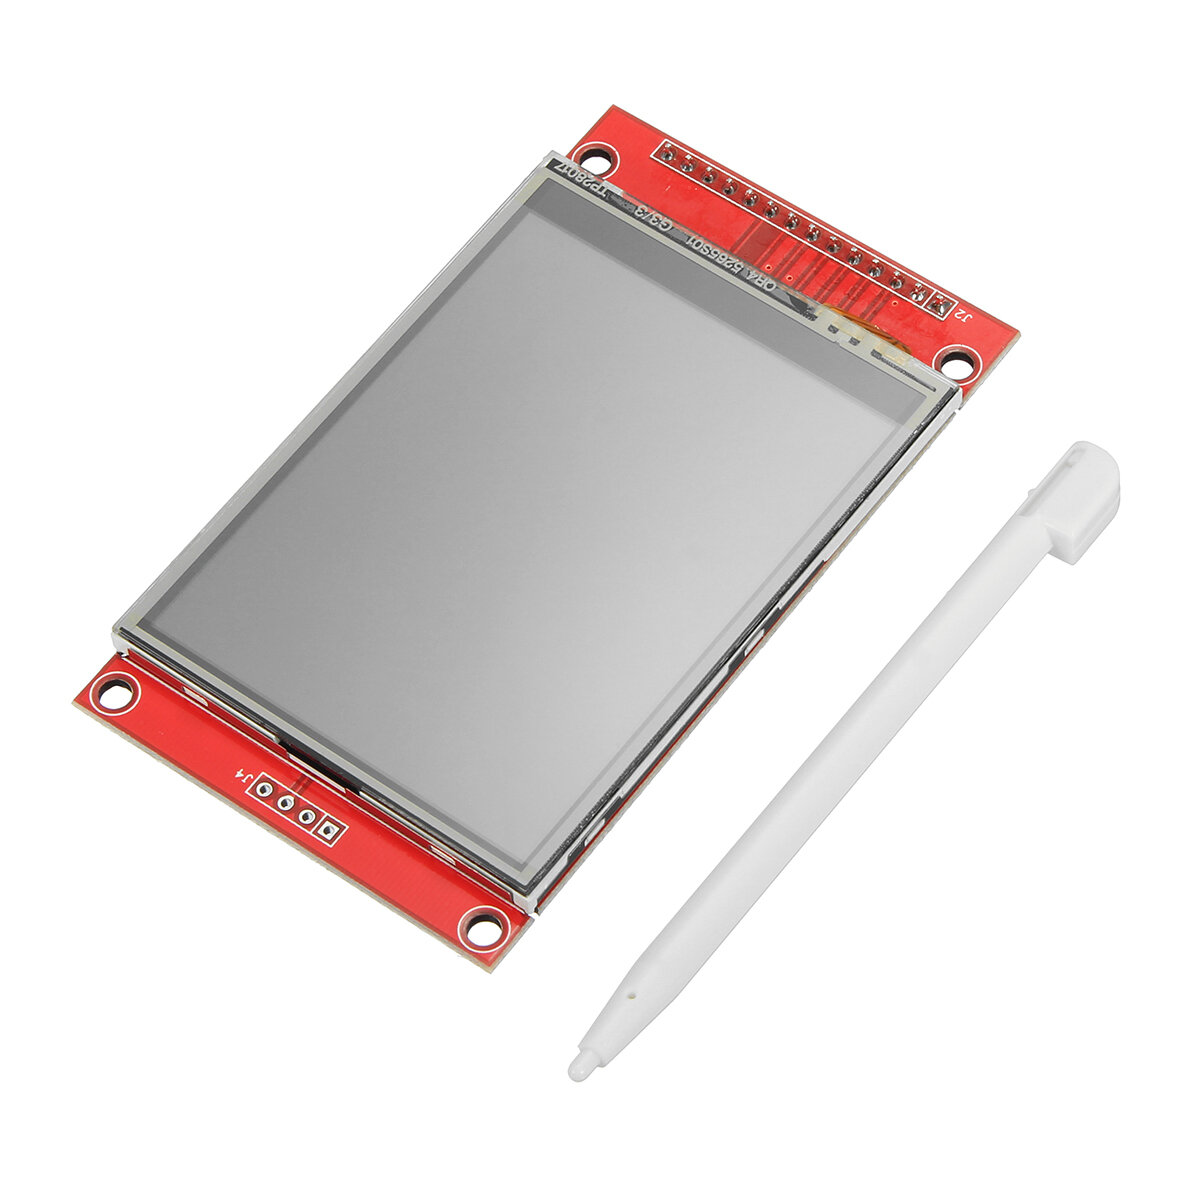 2.8 Inch ILI9341 240x320 SPI TFT LCD Display Touch Panel SPI Serial Port Module